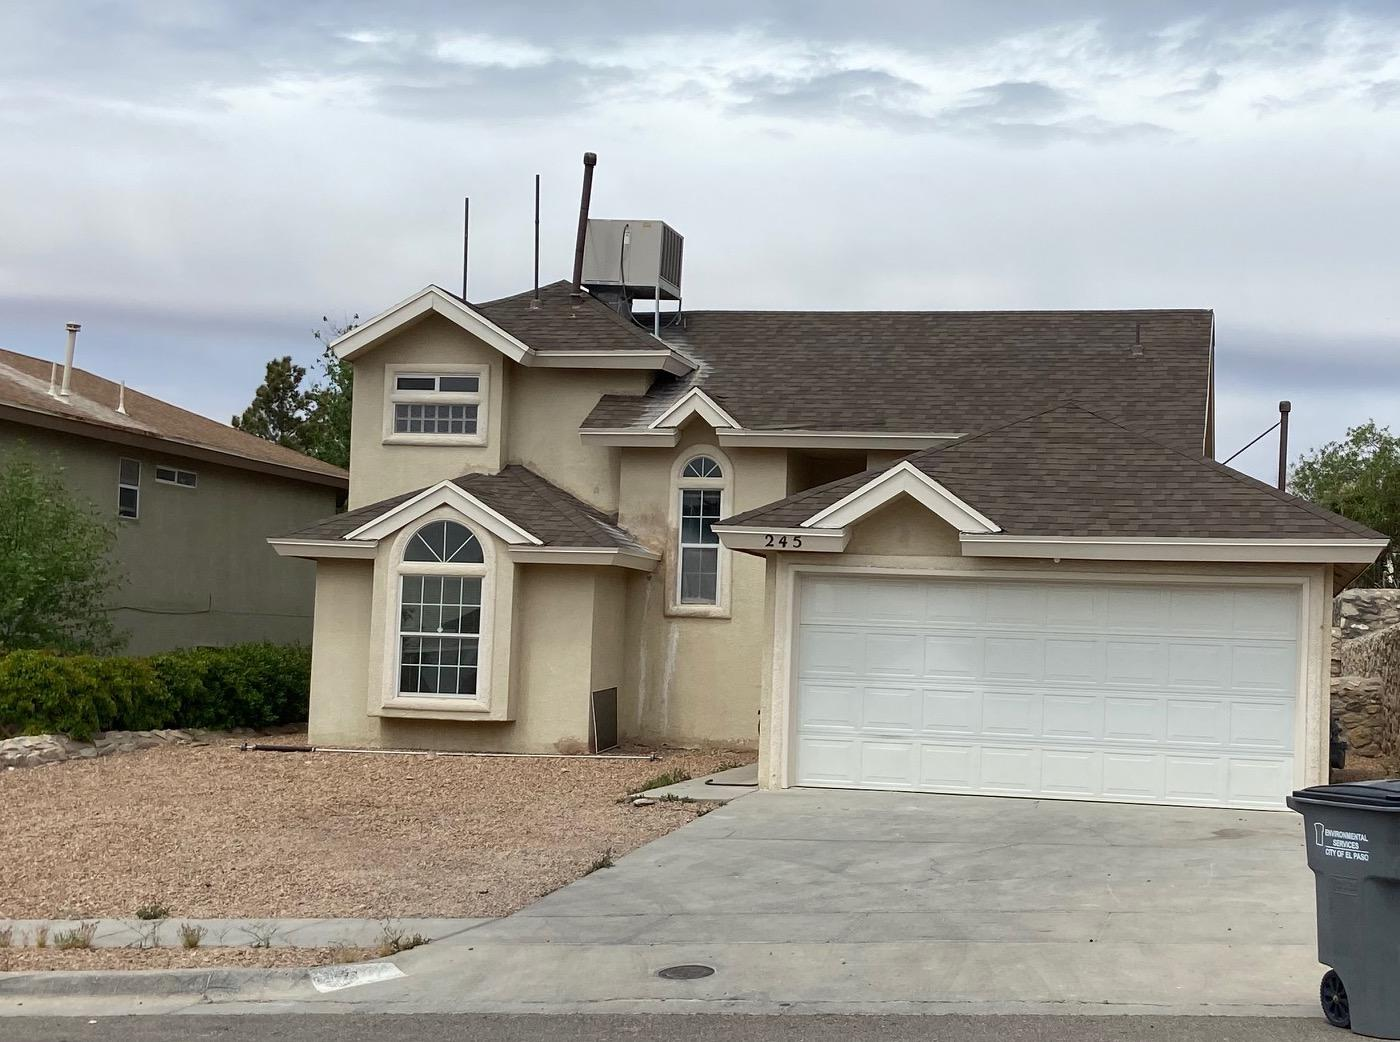 245 FERINAND, El Paso, Texas 79932, 3 Bedrooms Bedrooms, ,2 BathroomsBathrooms,Residential,For sale,FERINAND,844294